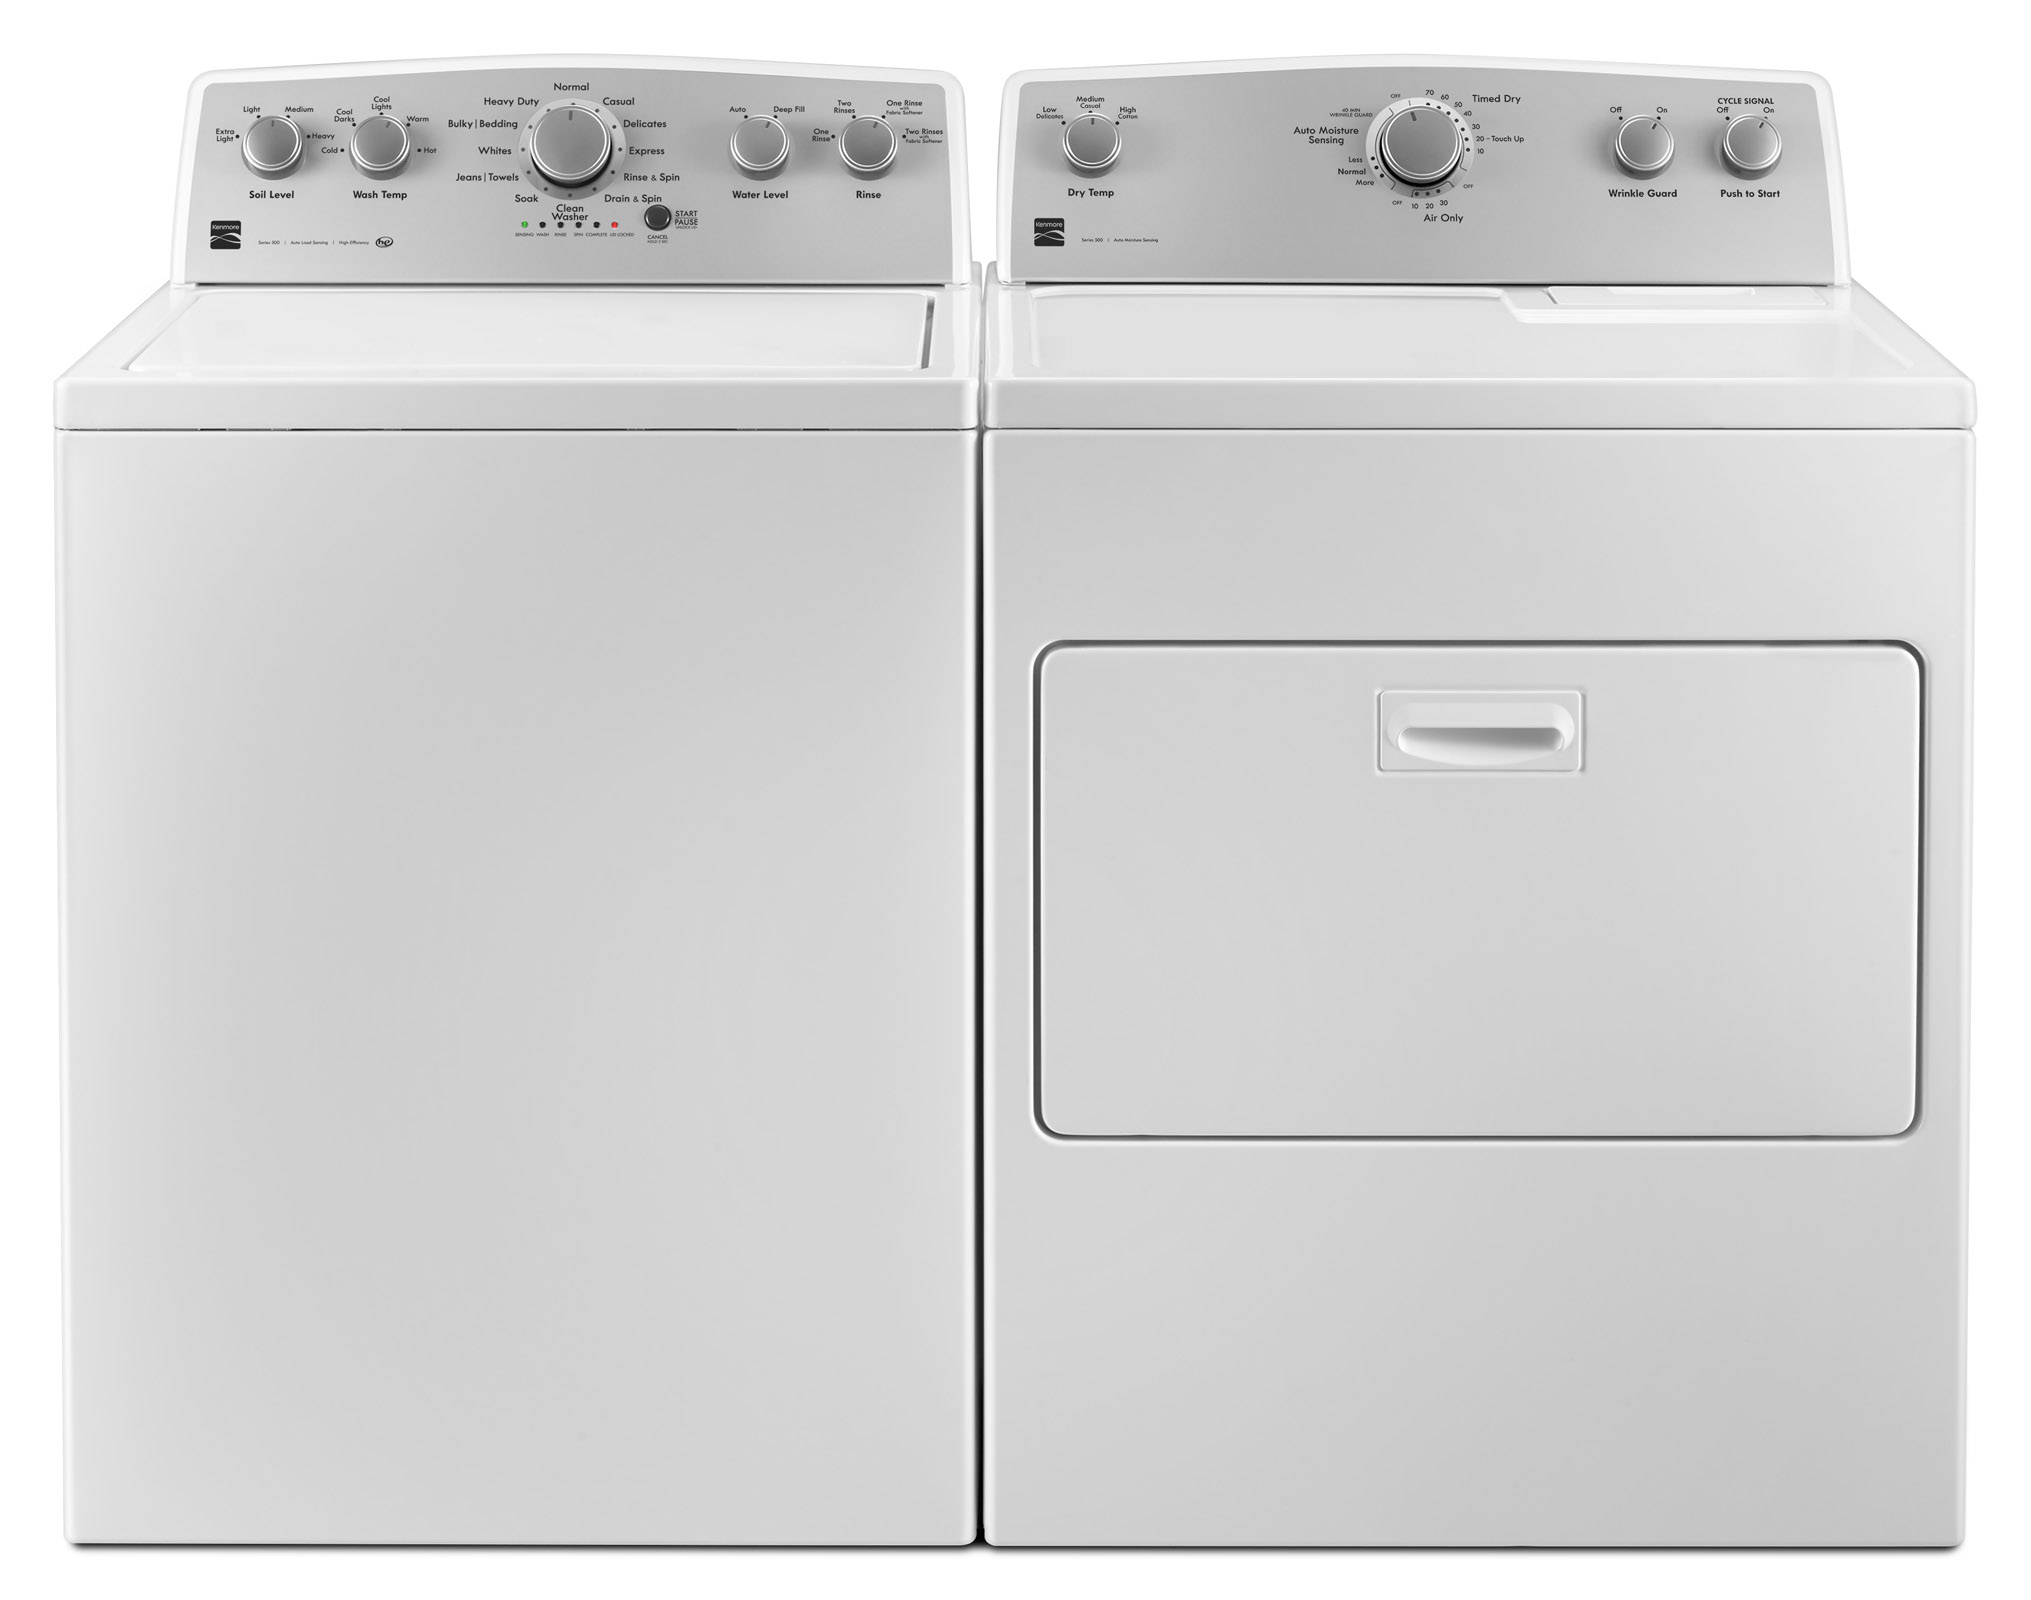 4.2 cu. ft. Top-Load Washer w/ Deep Fill & 7.0 cu. ft. Dryer w/ SmartDry Plus Tech - White